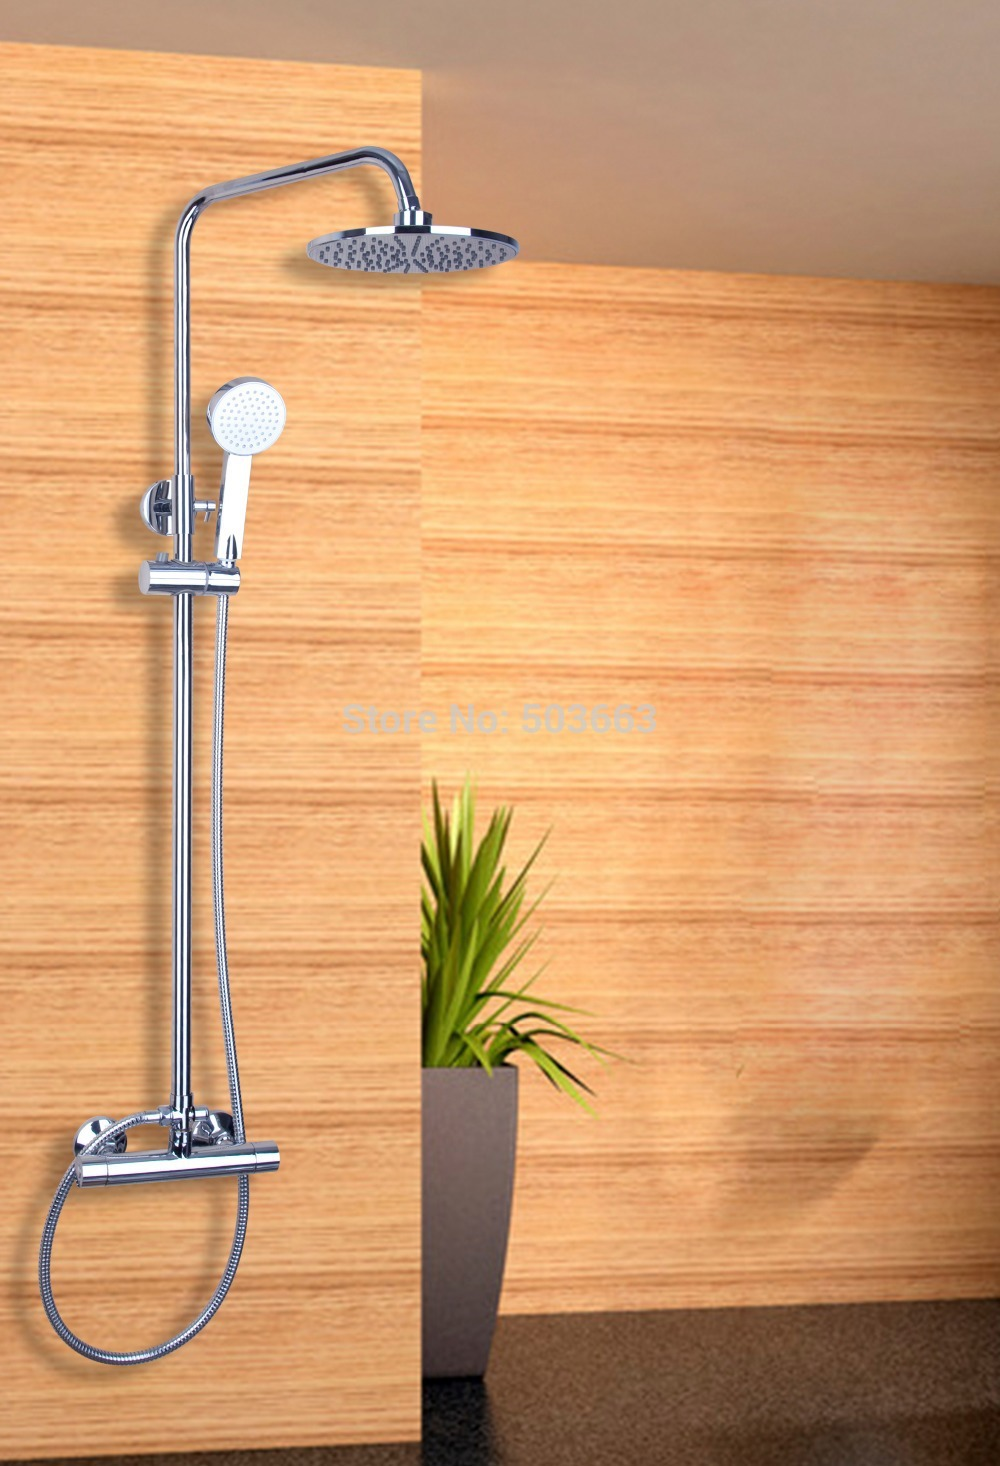 Luxury New 53305 Round 8'' Bath Rain Shower Head Square Wall Arm Rose Mixer Tap Faucet Sets Chrome Water Set china sanitary ware chrome wall mount thermostatic water tap water saver thermostatic shower faucet